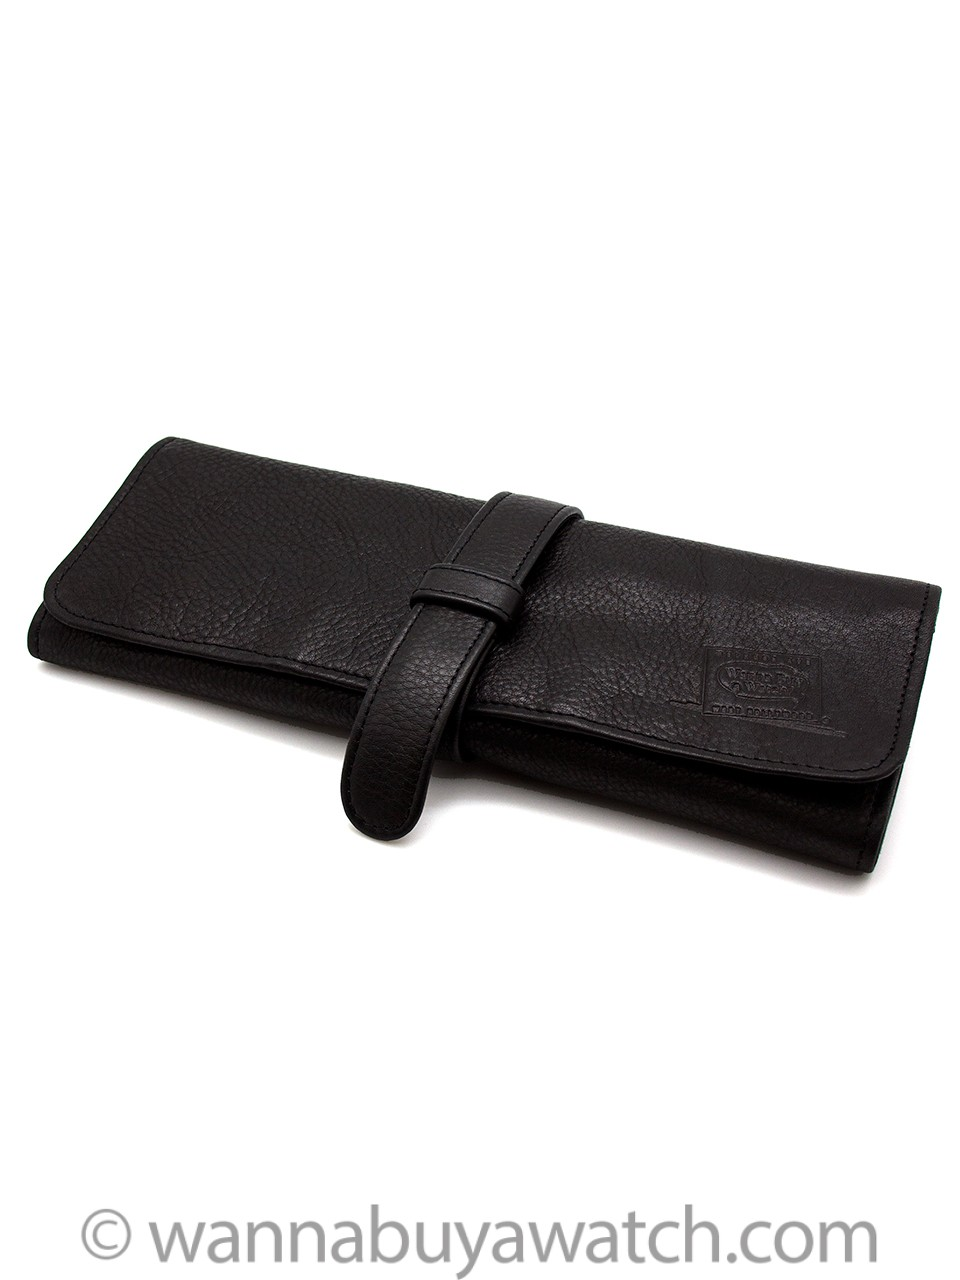 Fine Italian Leather Watch Roll, New Arrival! Redesigned